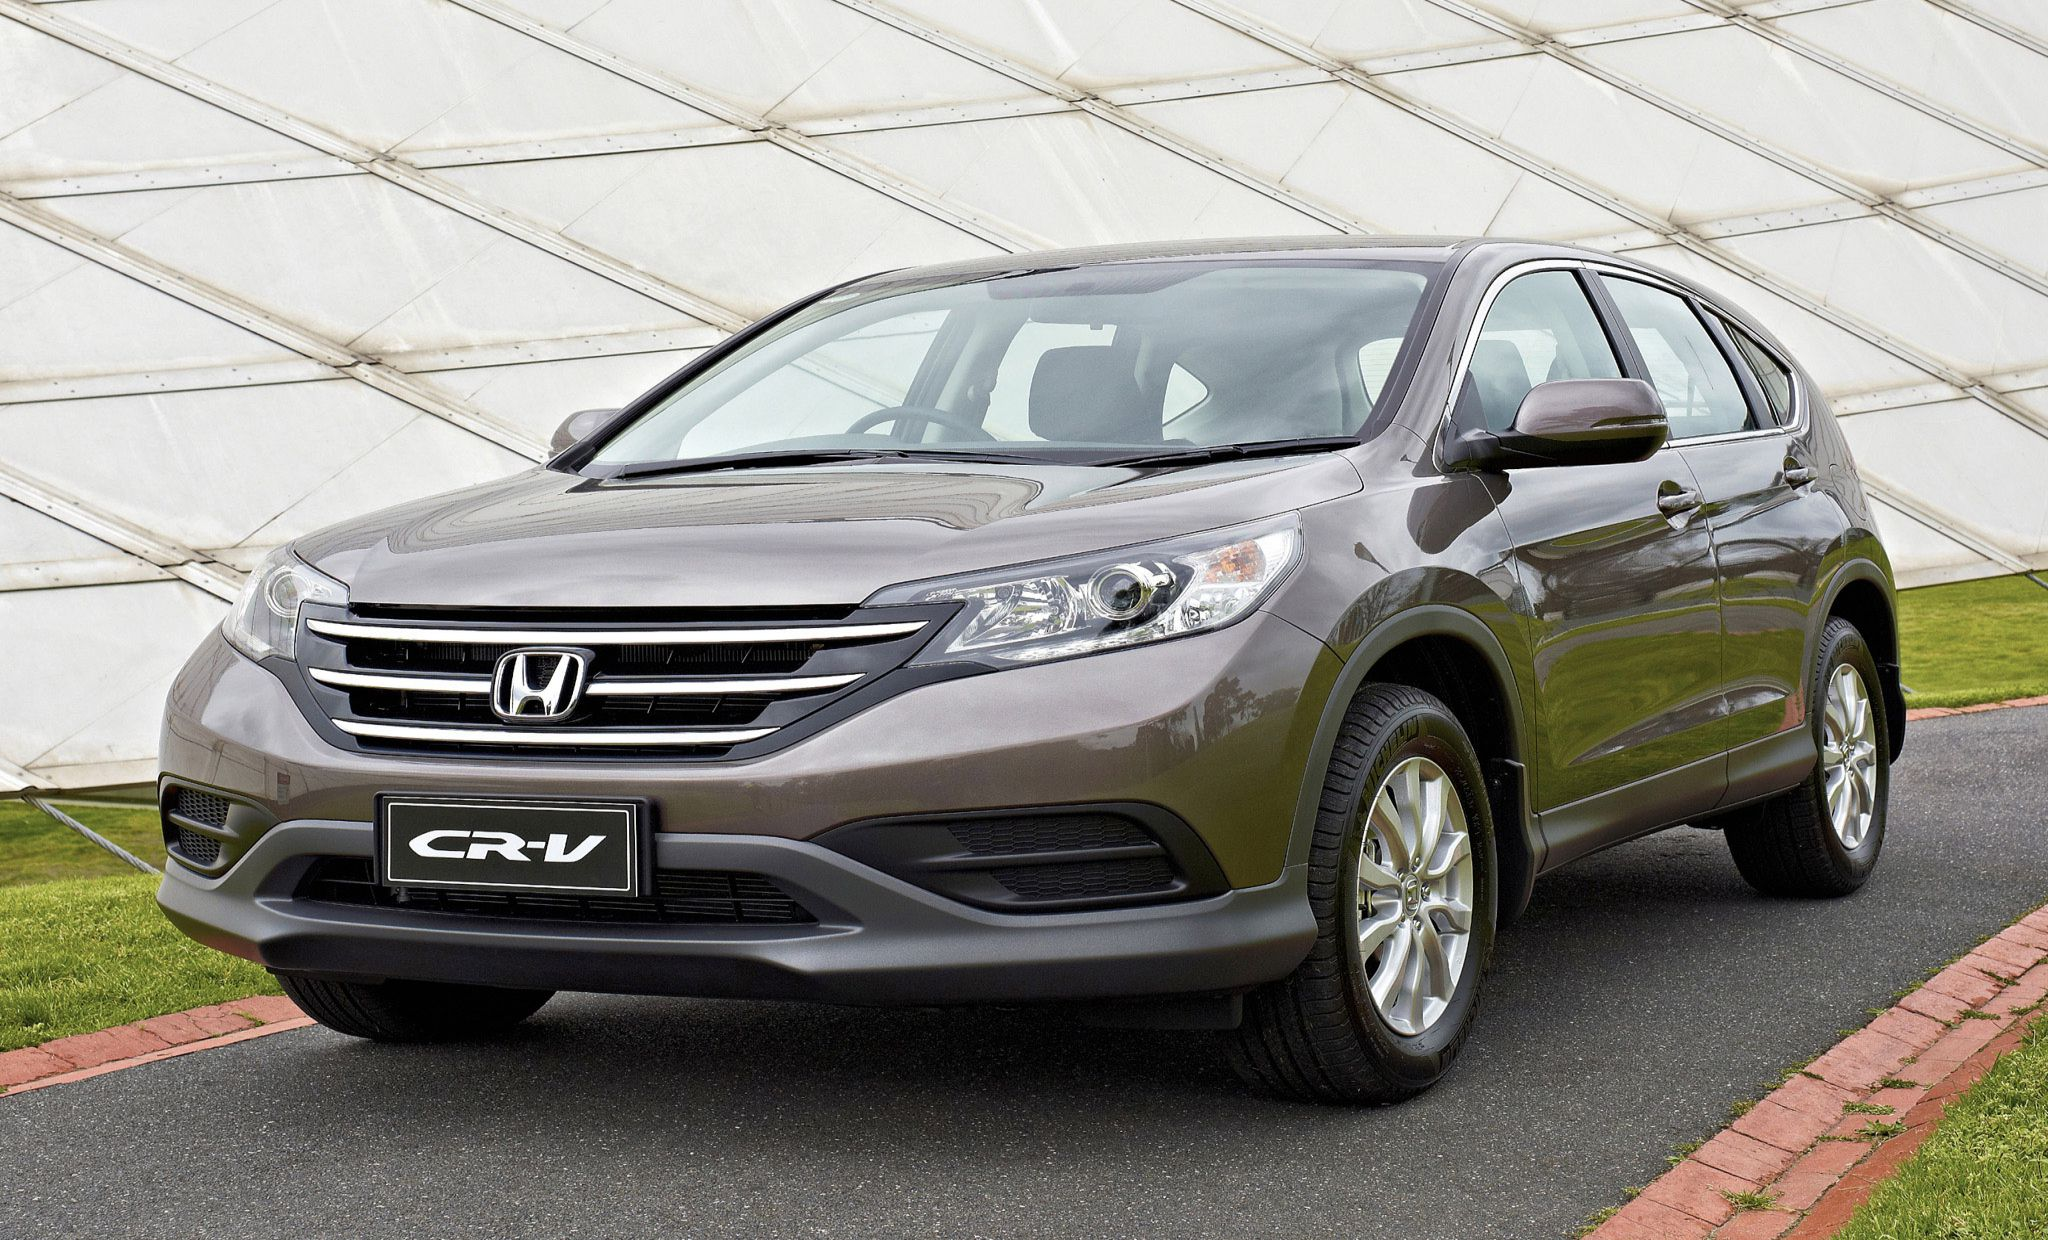 2012_Honda_CR-V_-_Australian_version_001_2664